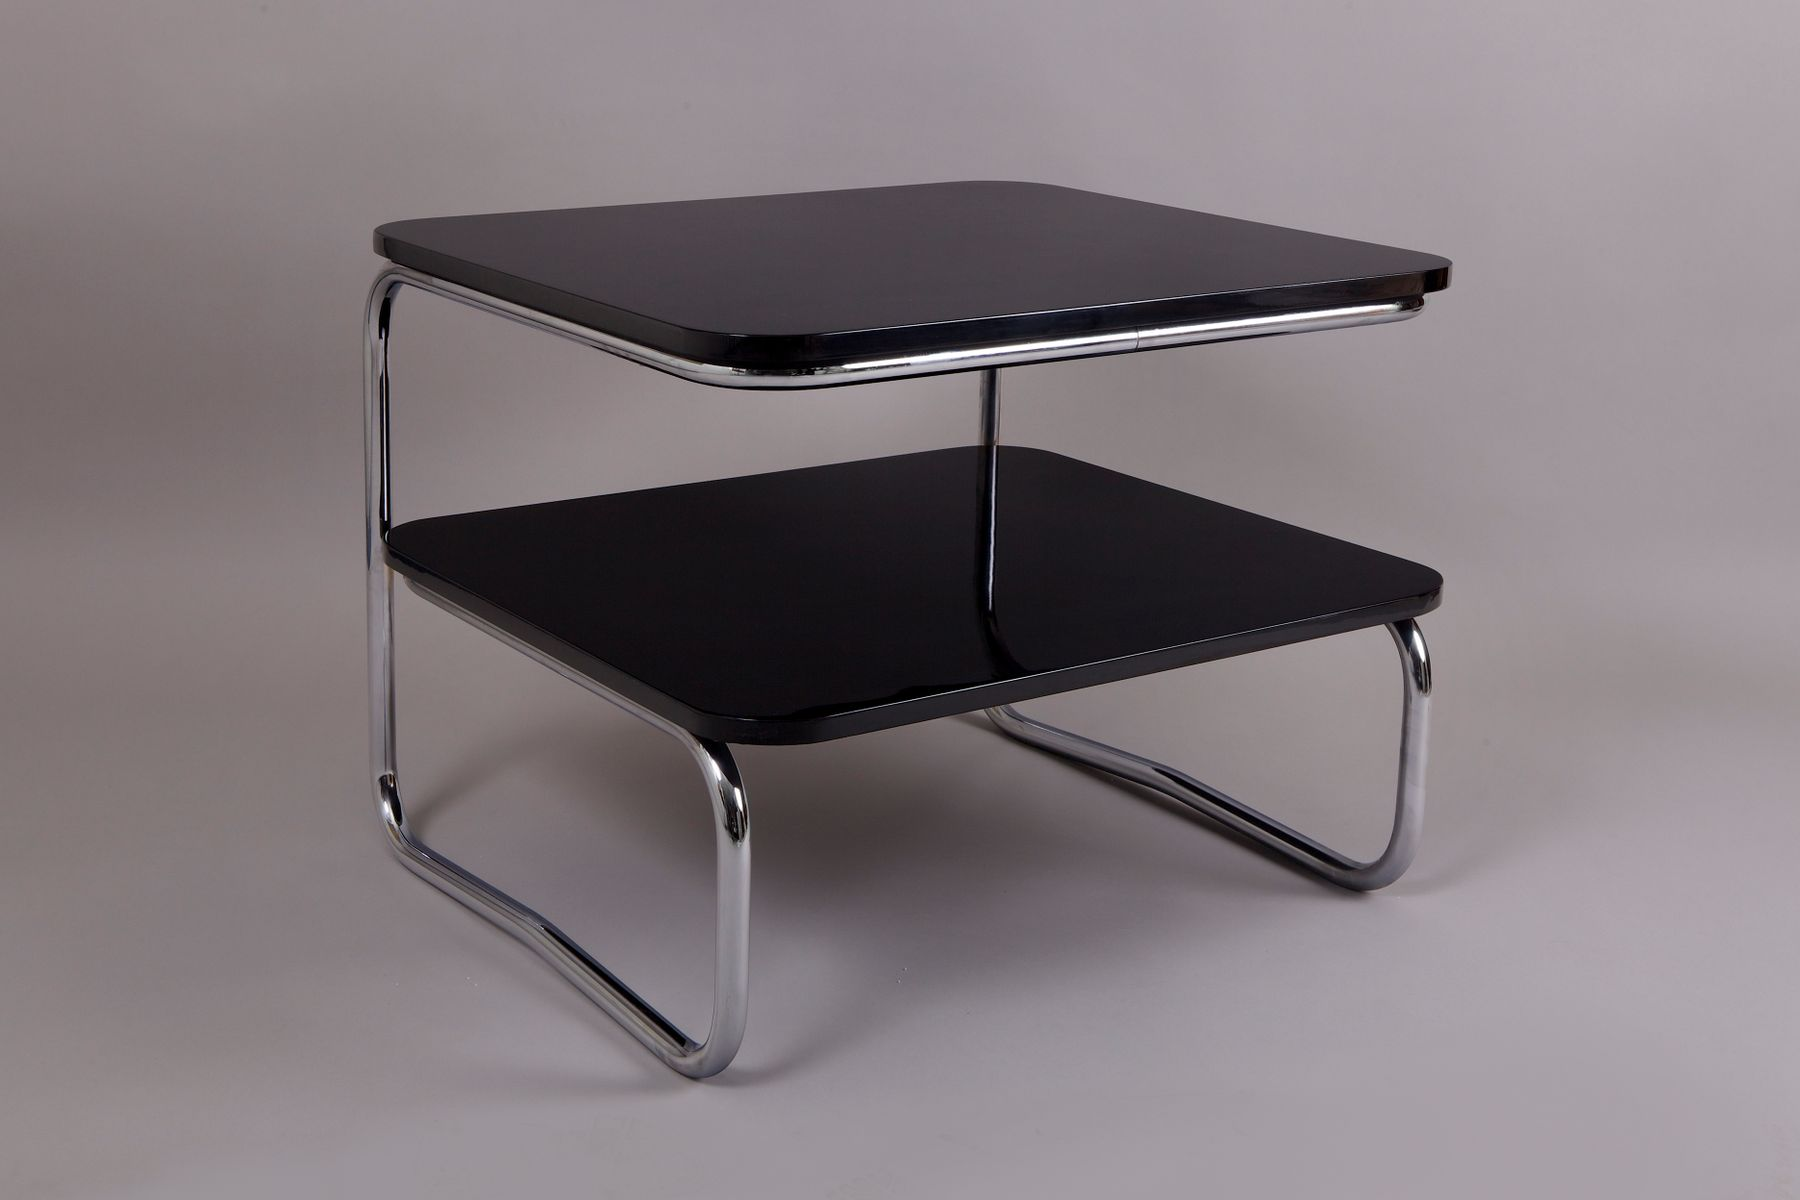 Black Amp Chrome Table ~ Vintage black and chrome square b table from robert